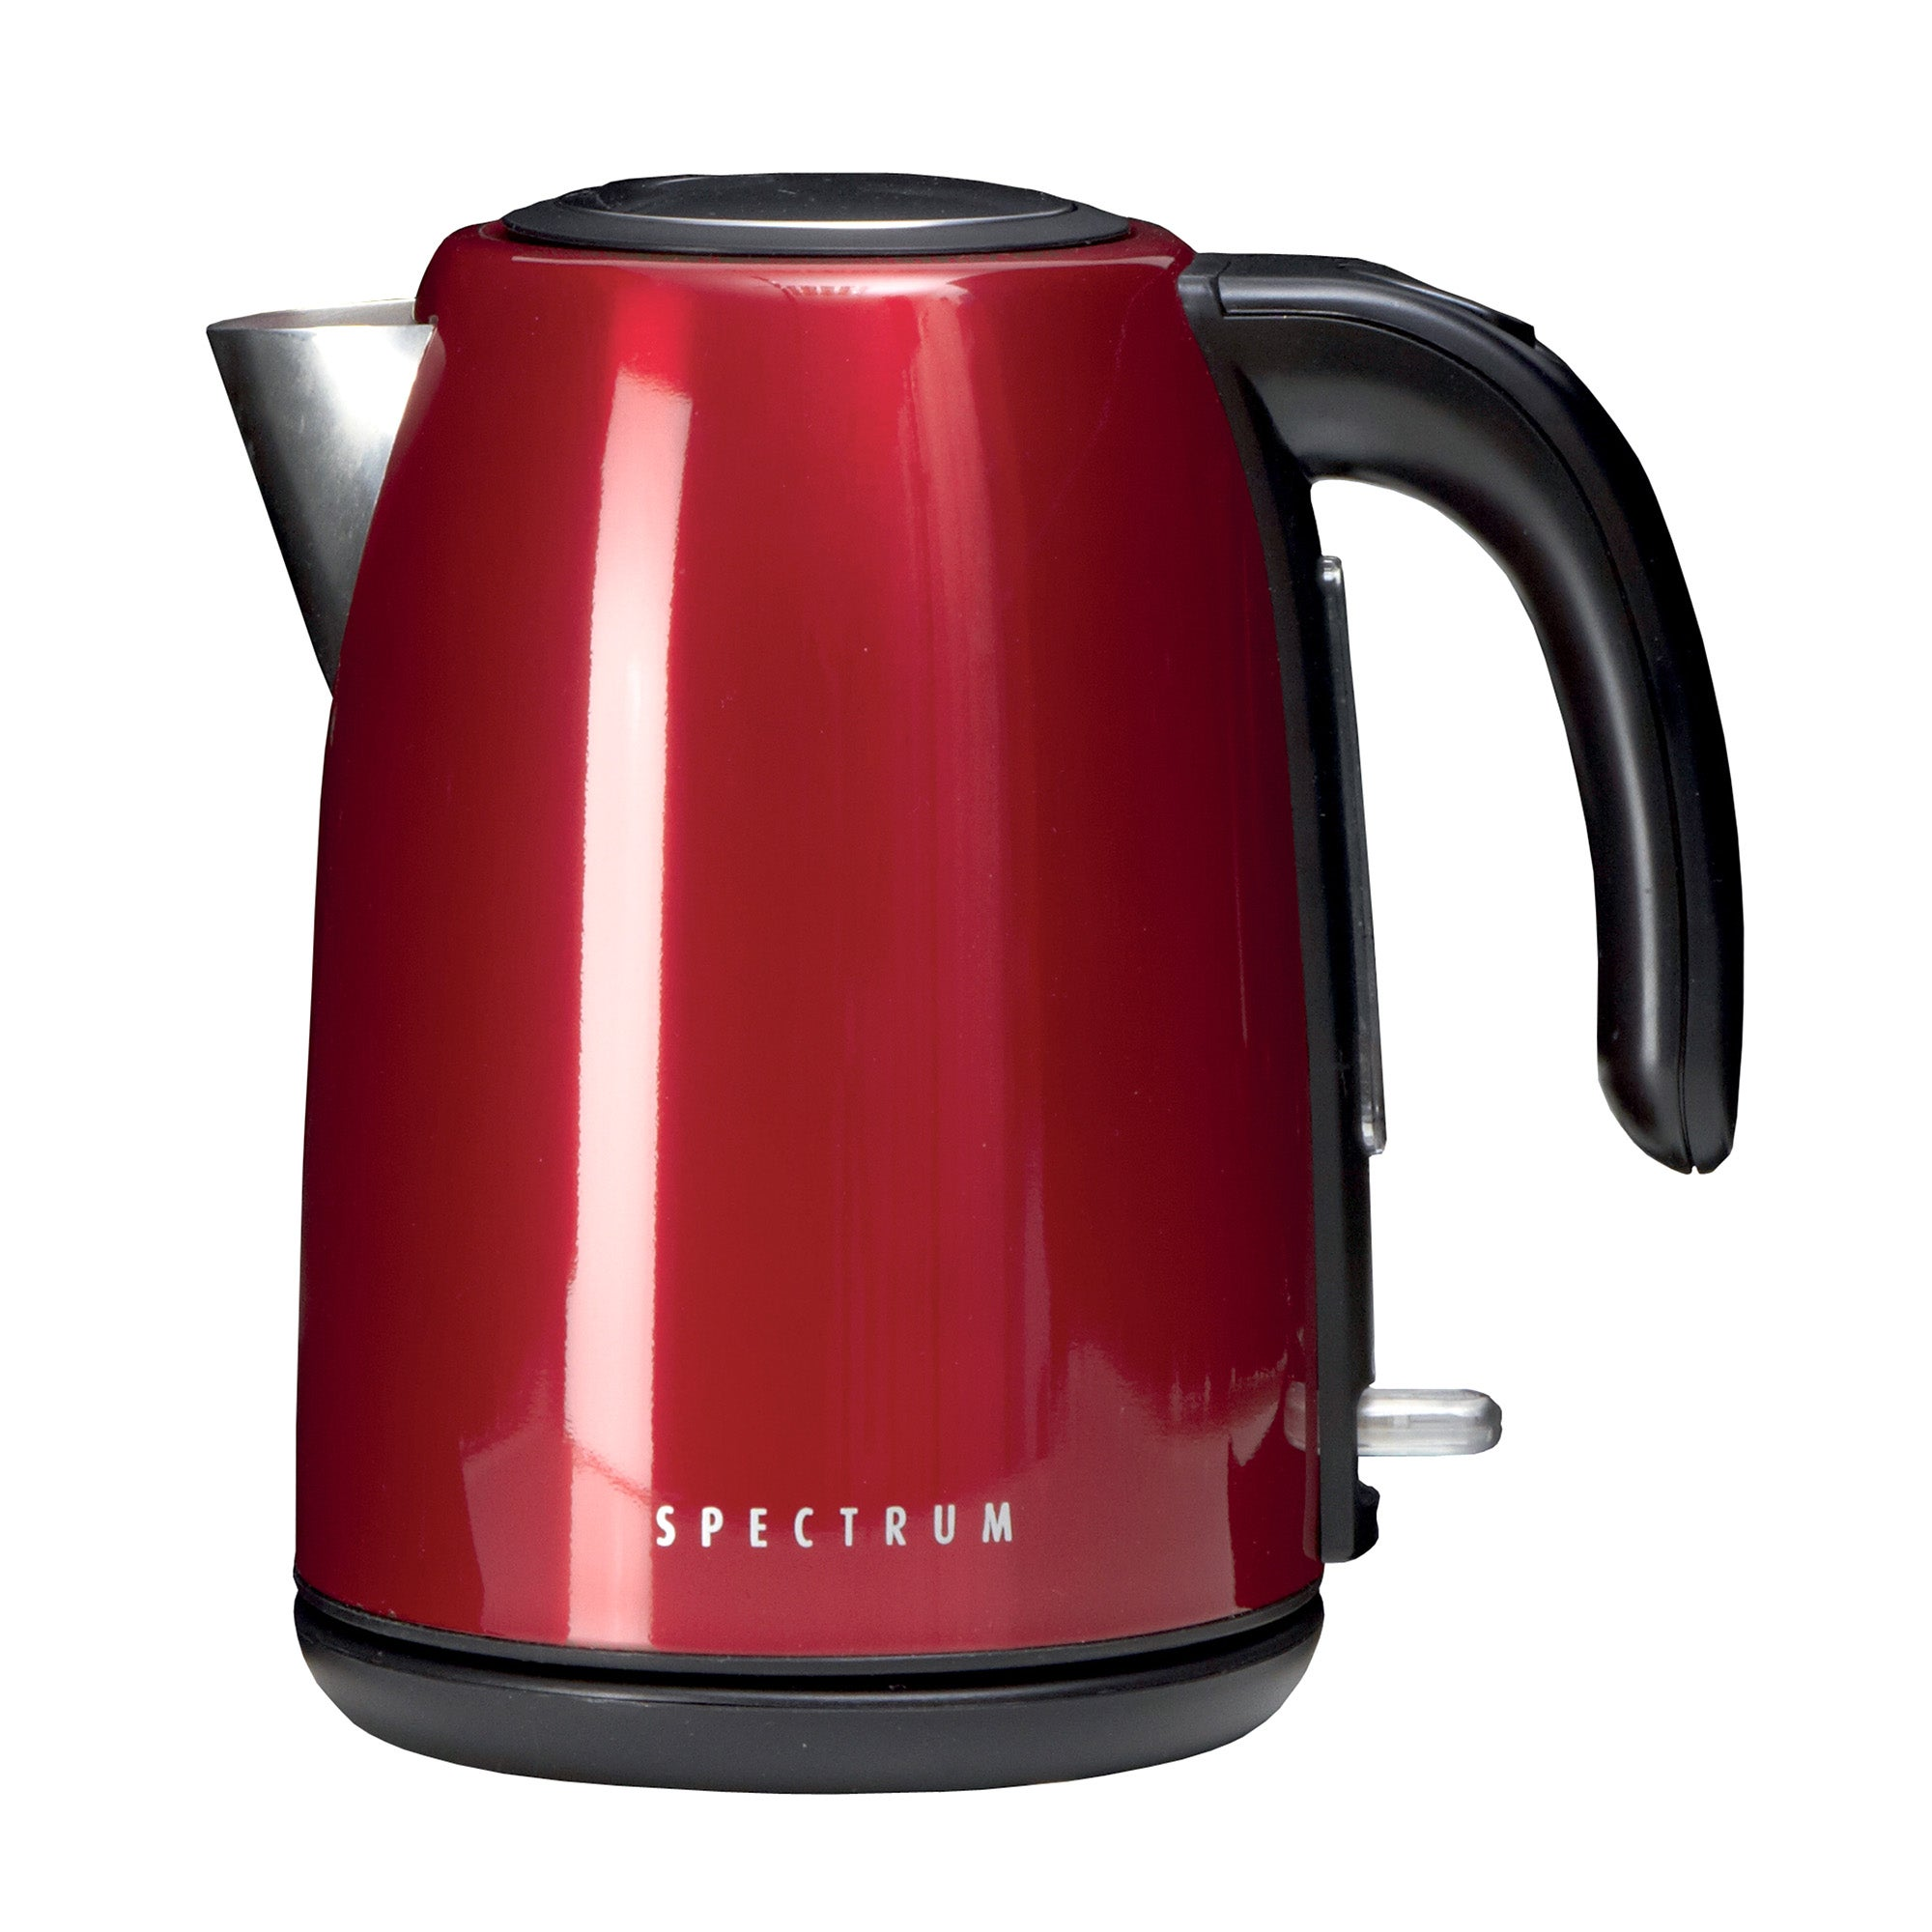 Red Spectrum Collection Rapid Boil Kettle